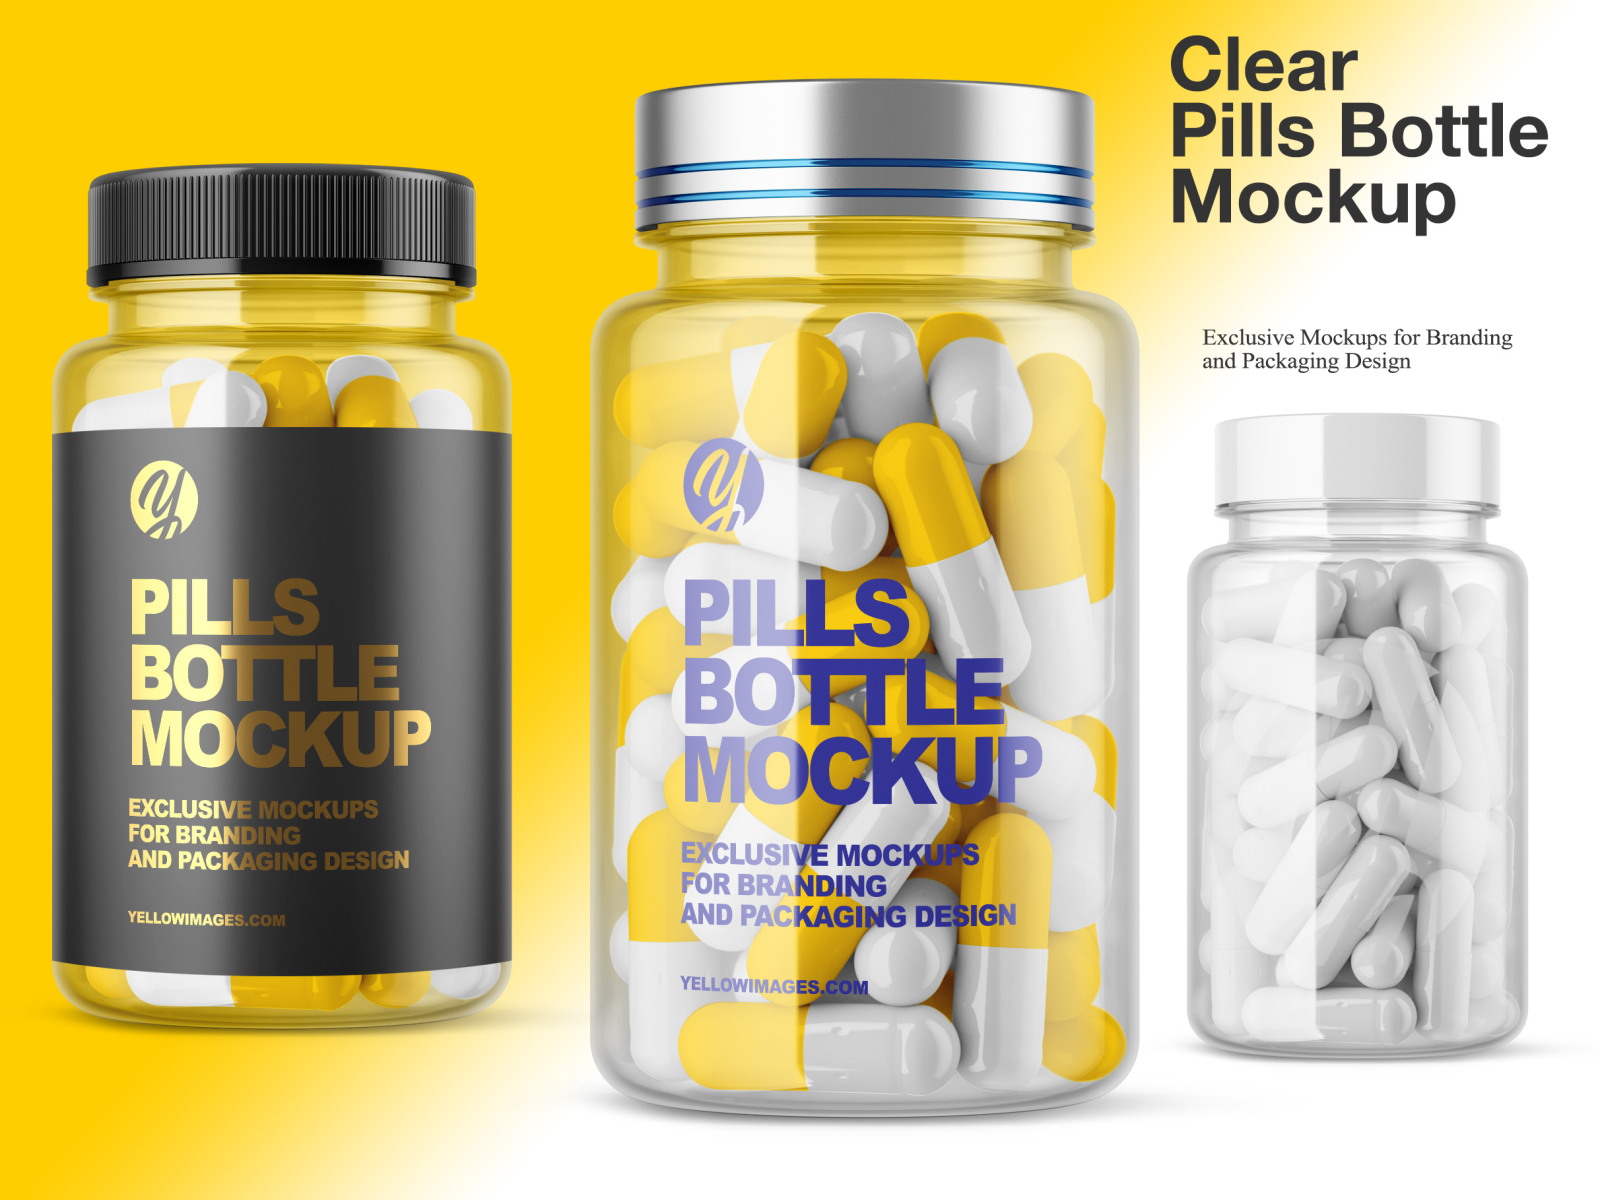 Download Clear Pills Bottle Mockup By Oleksandr Hlubokyi On Dribbble PSD Mockup Templates